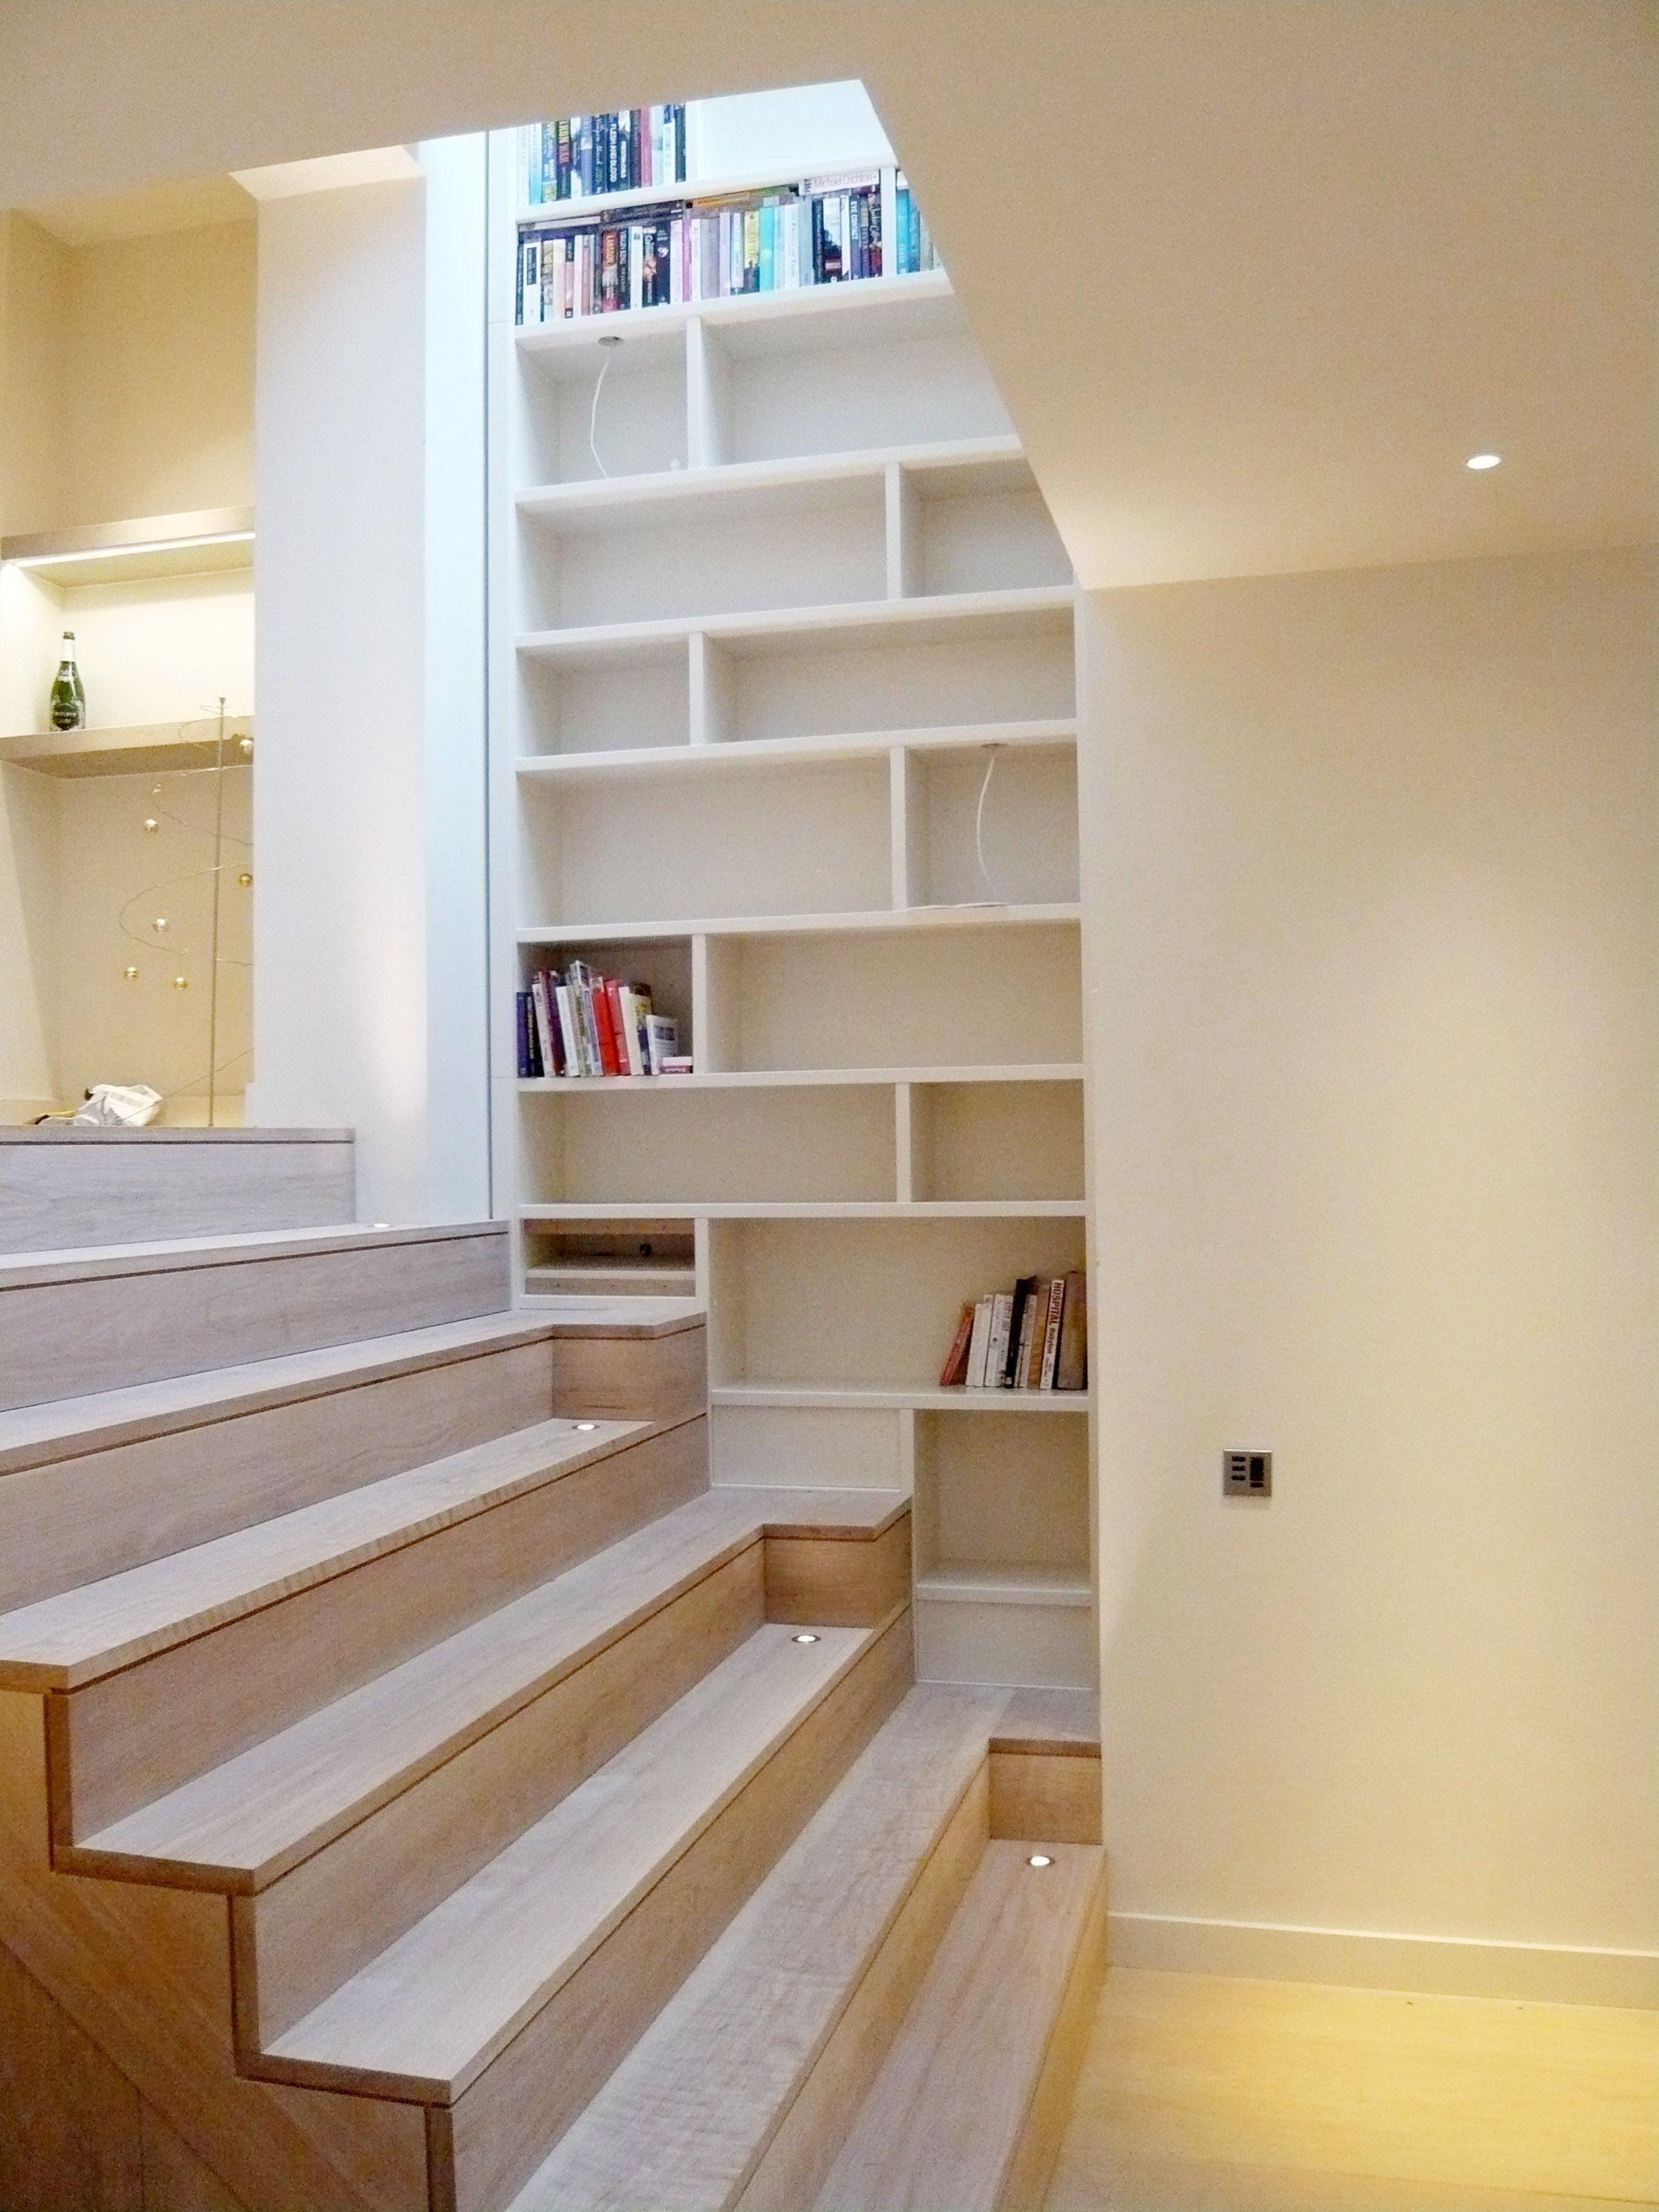 London House Sw3 Joinery Architects Simon Smith And Michael Brooke